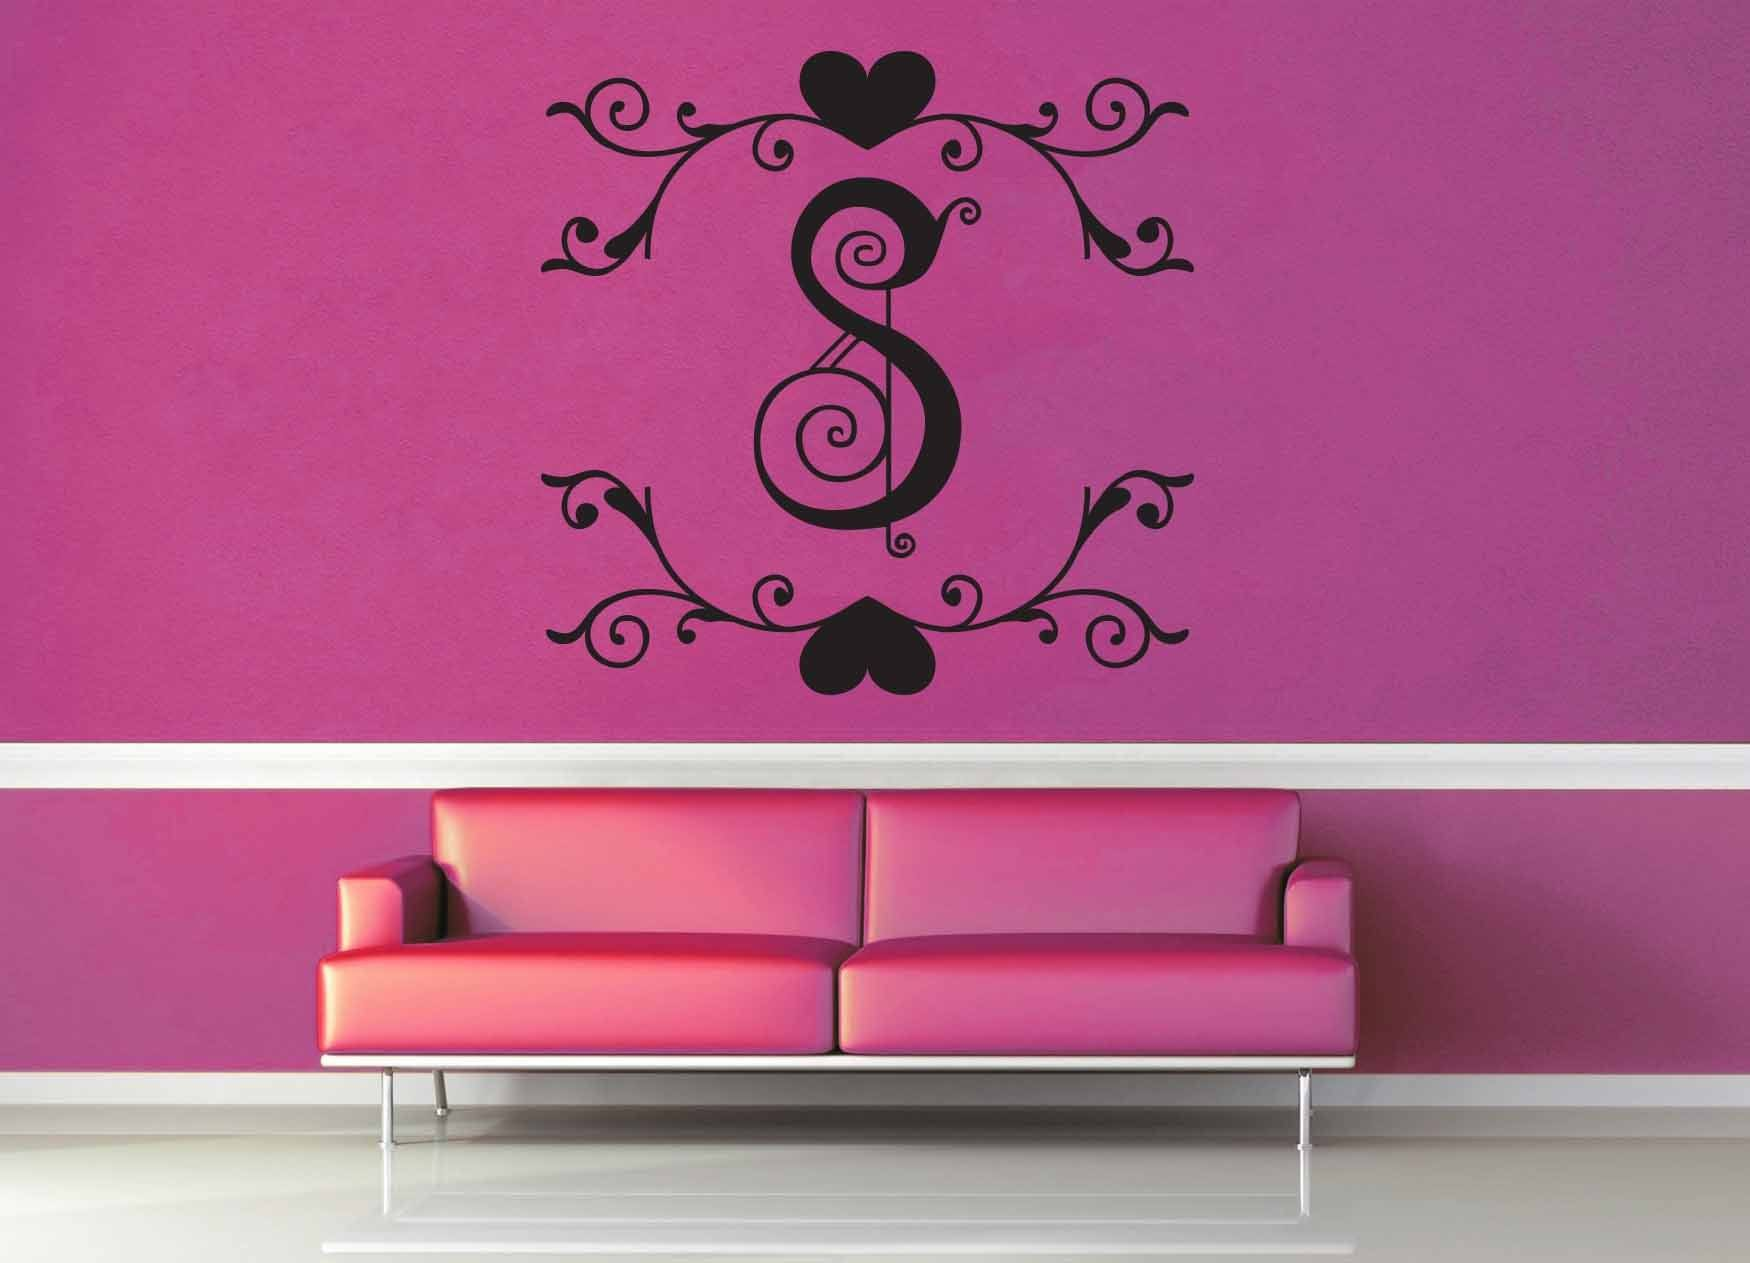 Fantasy Monogram - S - Wall Decal